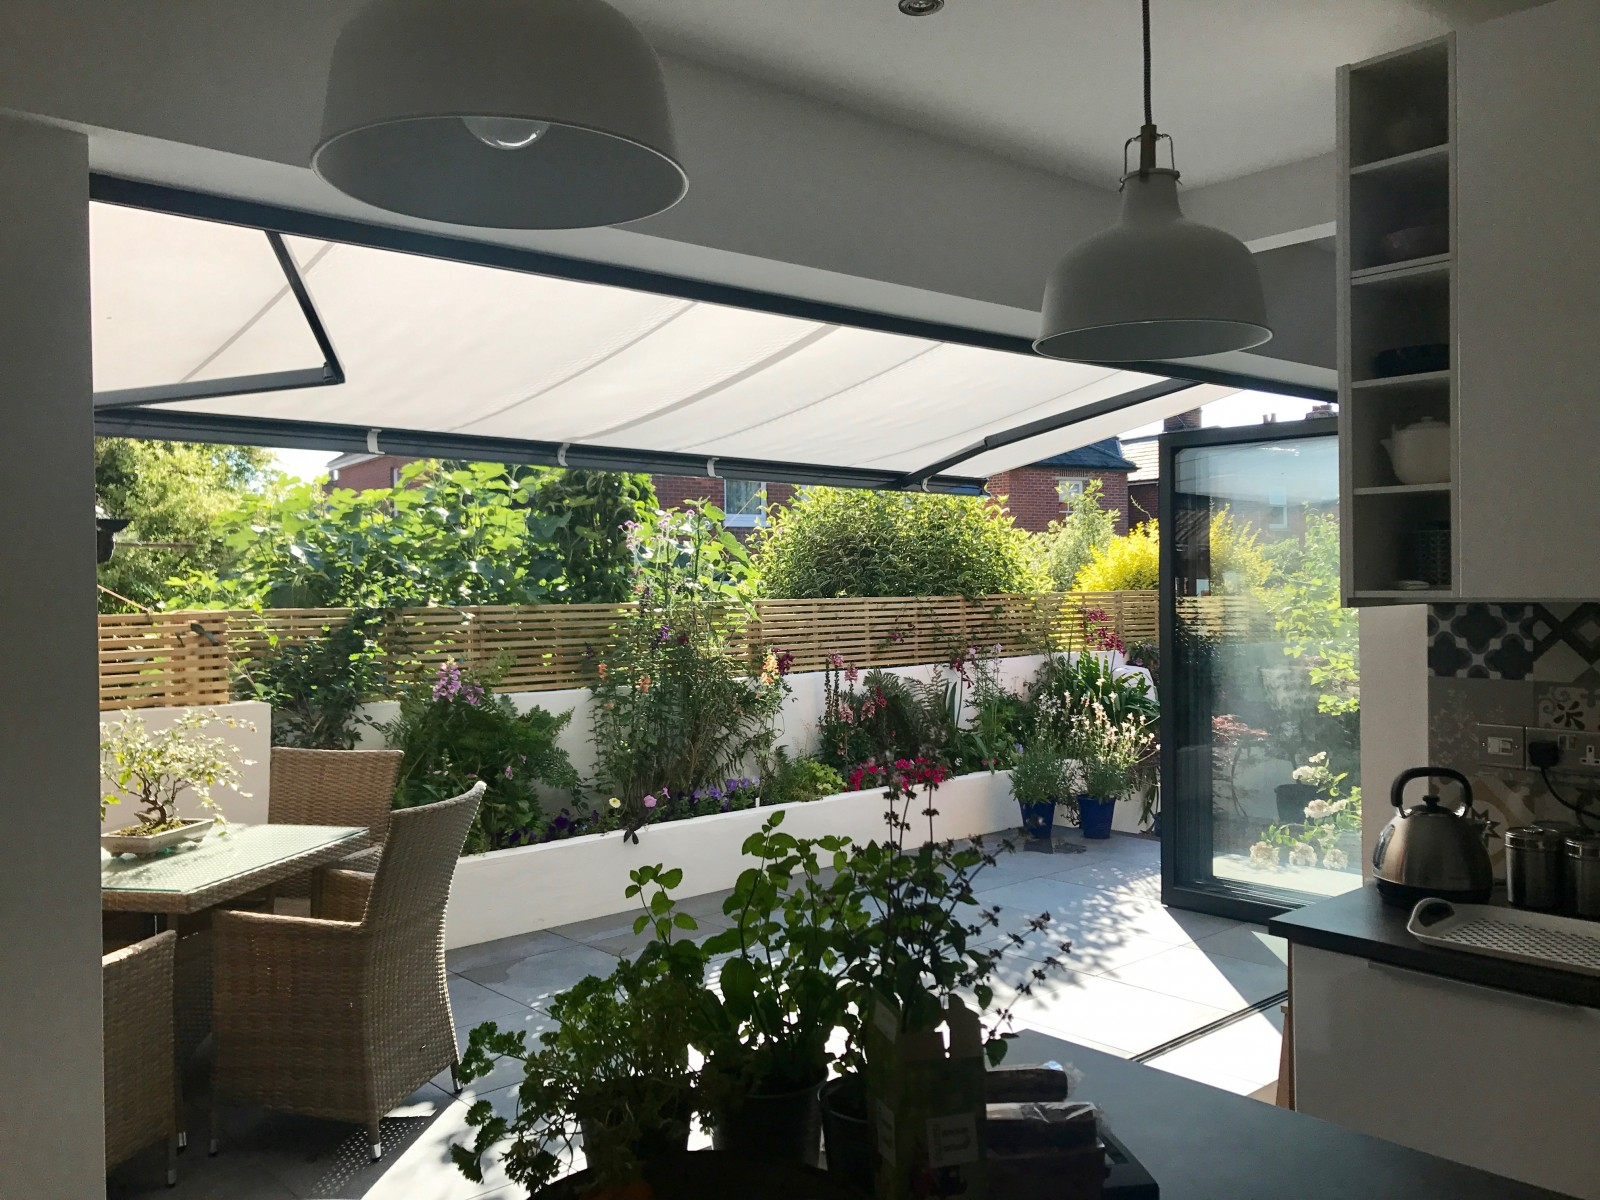 6 Benefits Of Awnings For Bifold Doors